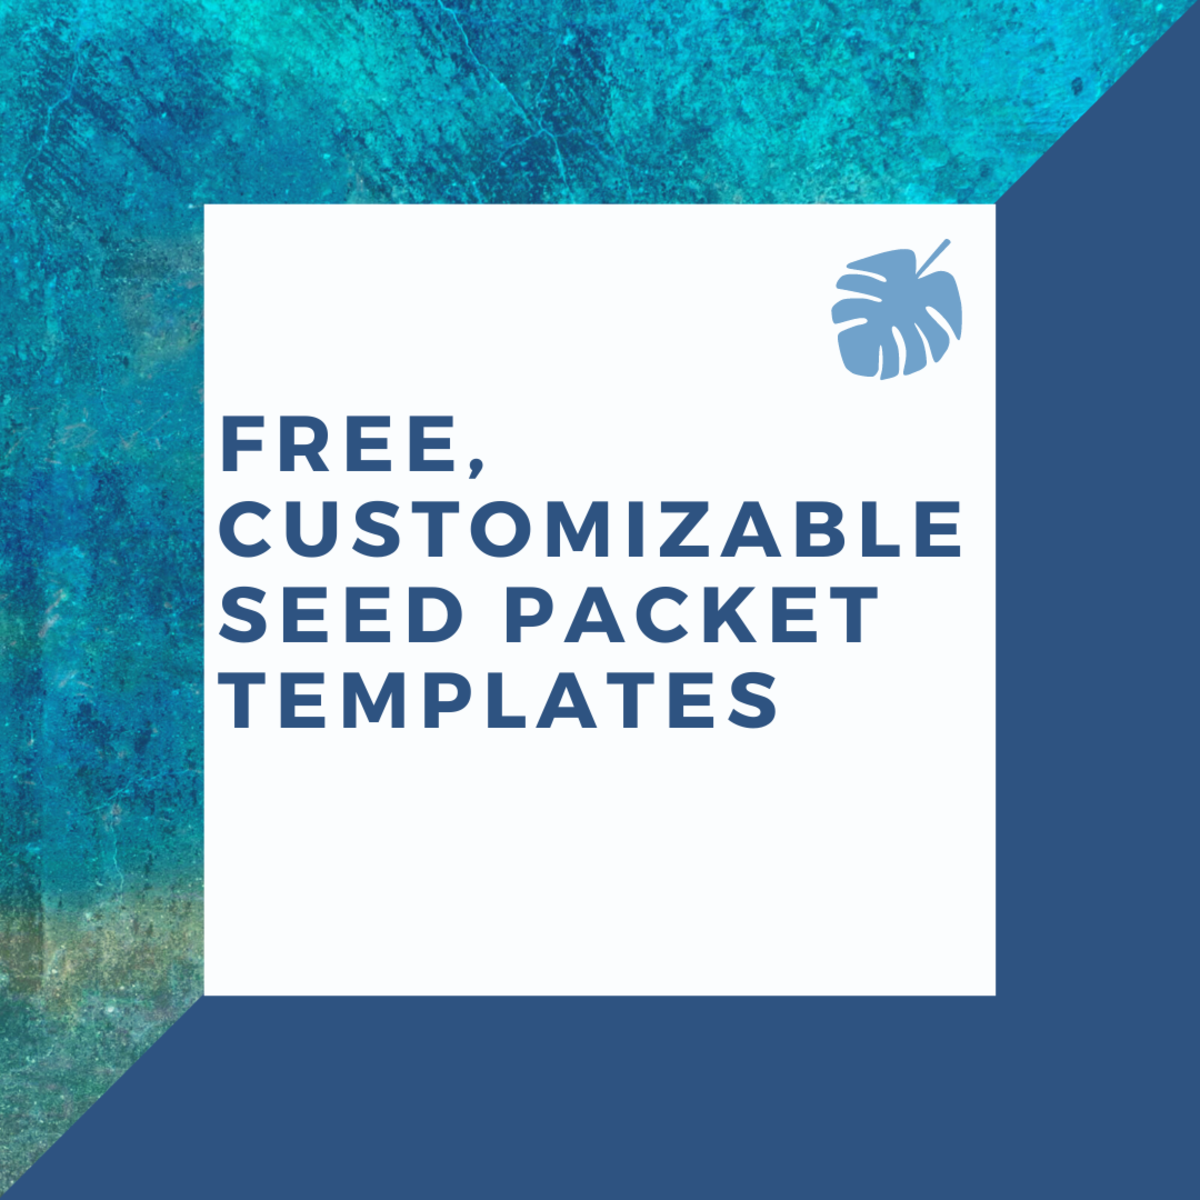 Learn about free, easy-to-customize templates for making seed packets